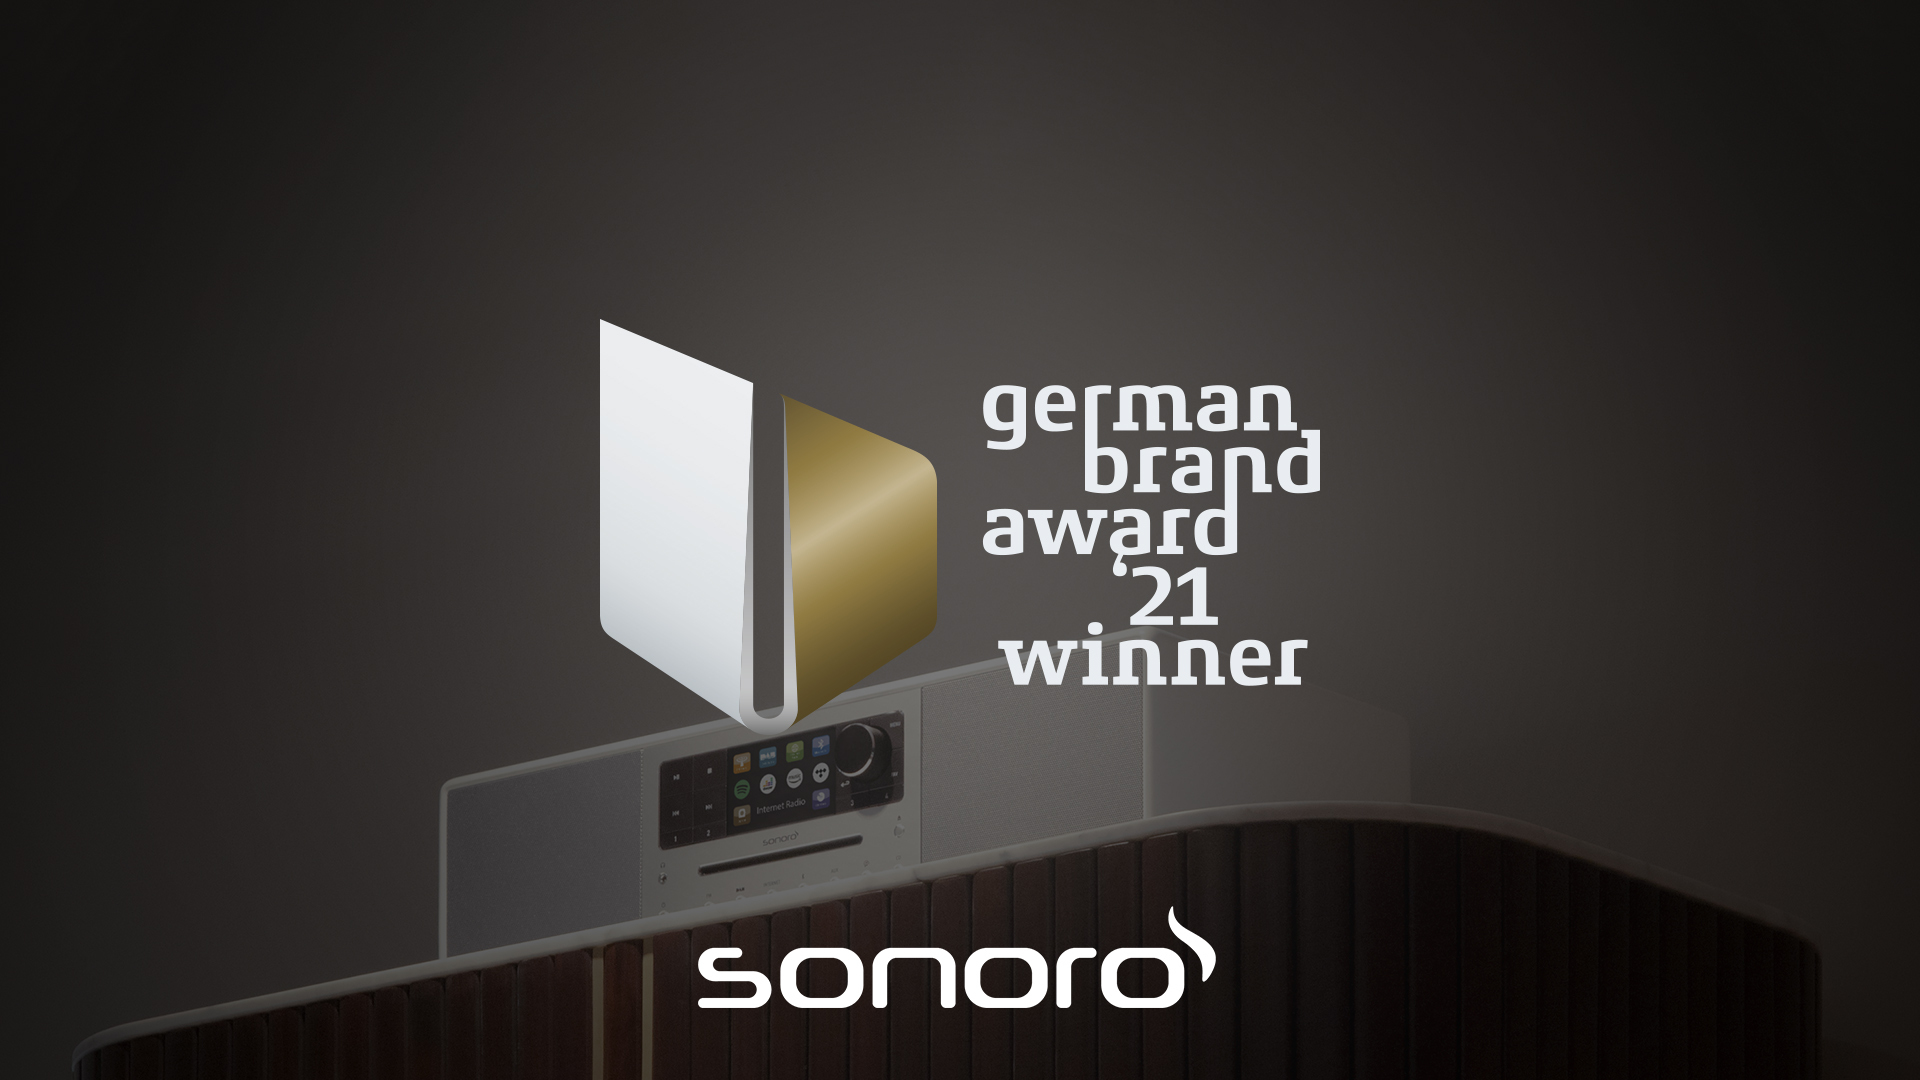 """Featured image for """"German Brand Award 2021: sonoro siegt in der Kategorie """"Excellent Brands – Consumer Electronics"""""""""""